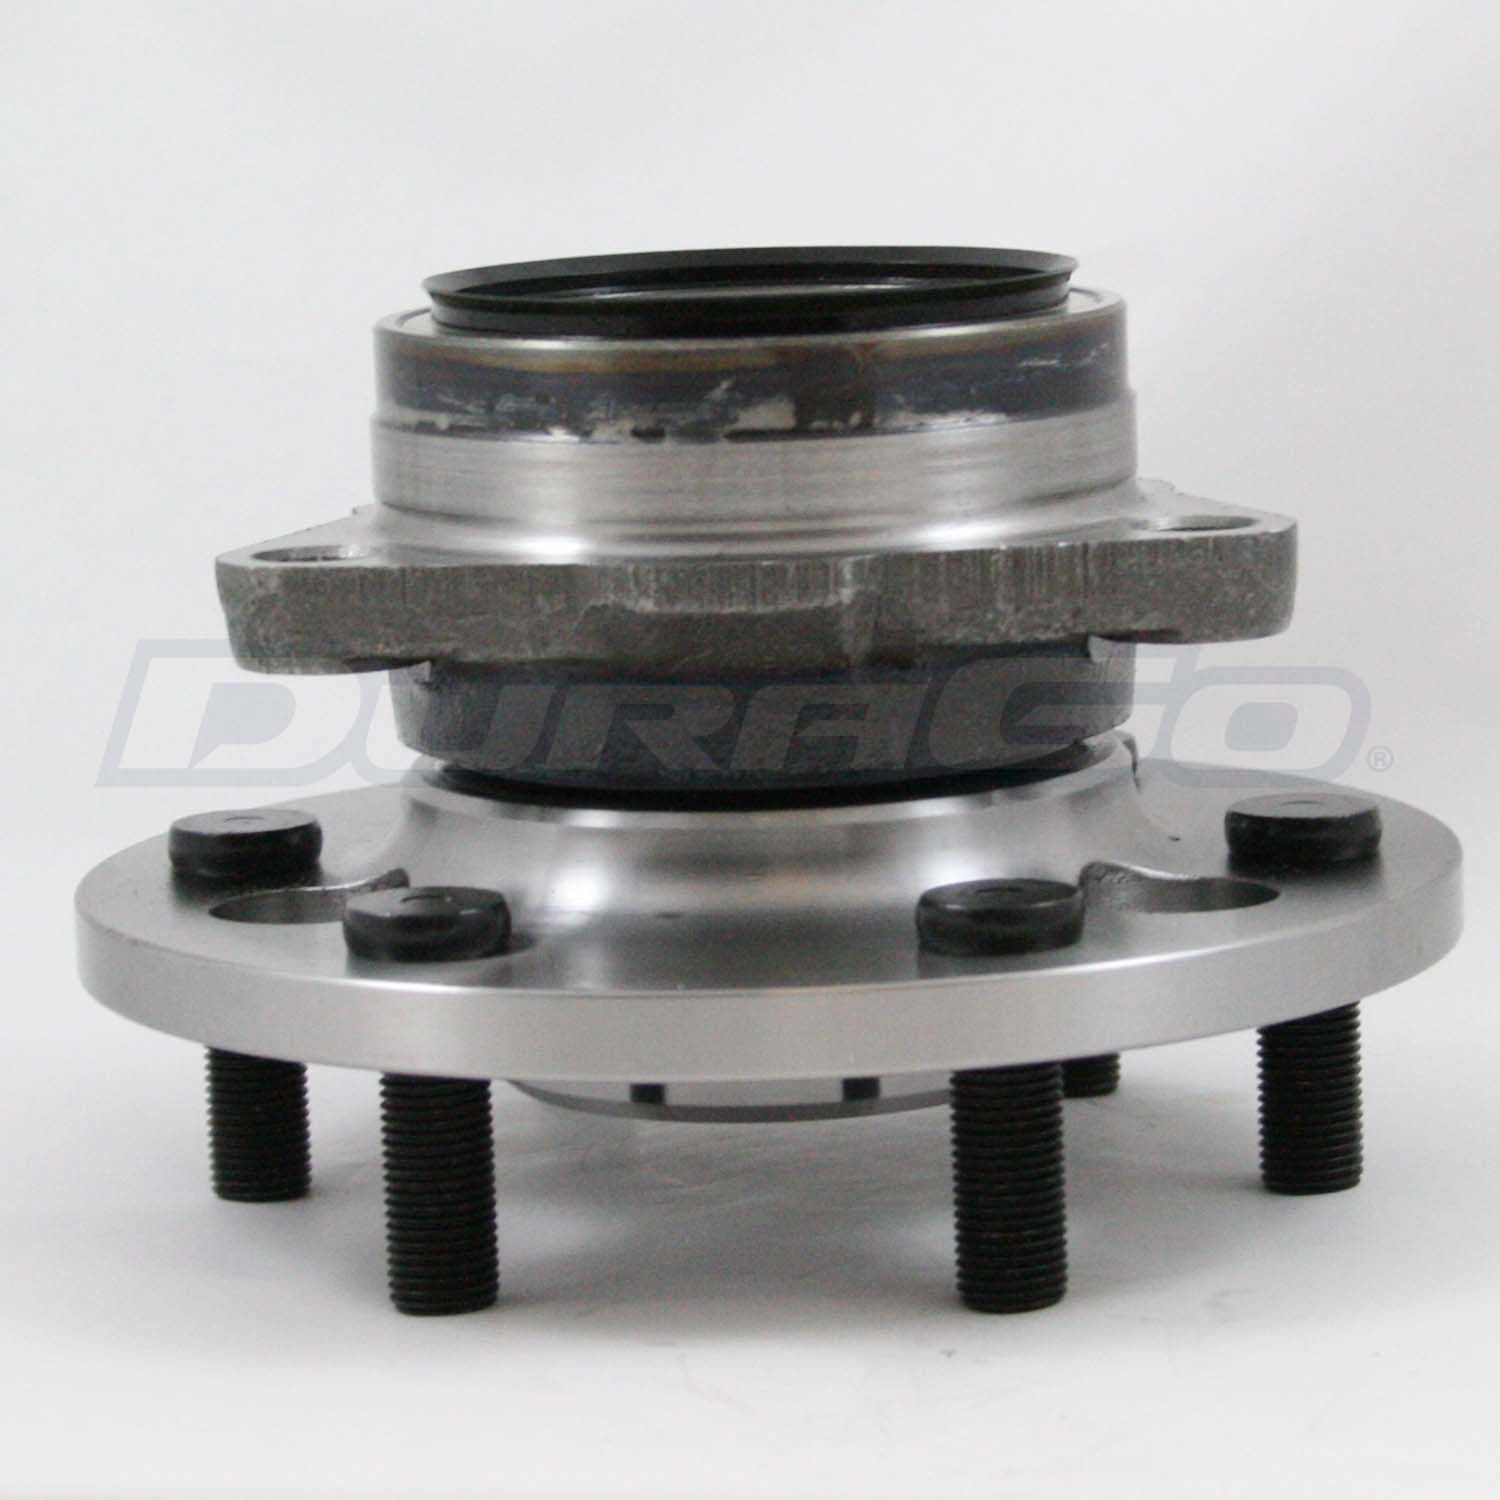 DURAGO - Axle Bearing and Hub Assembly - D48 295-15001